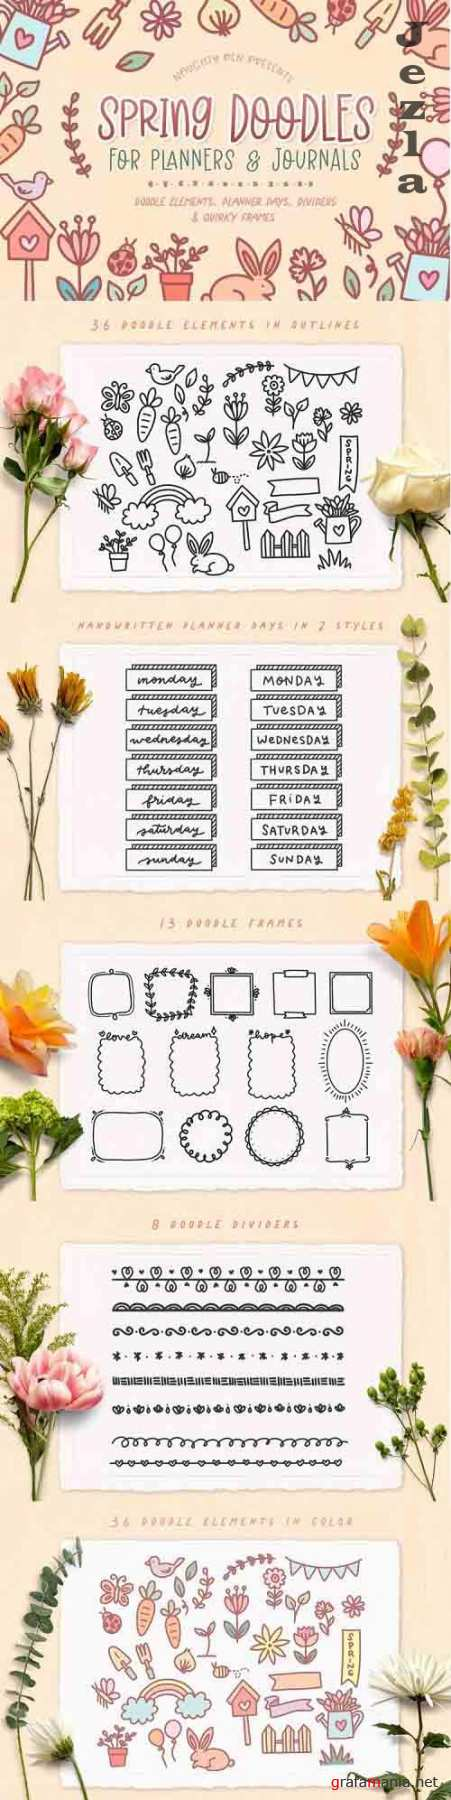 Spring Doodles For Planners And Journaling - 1239882